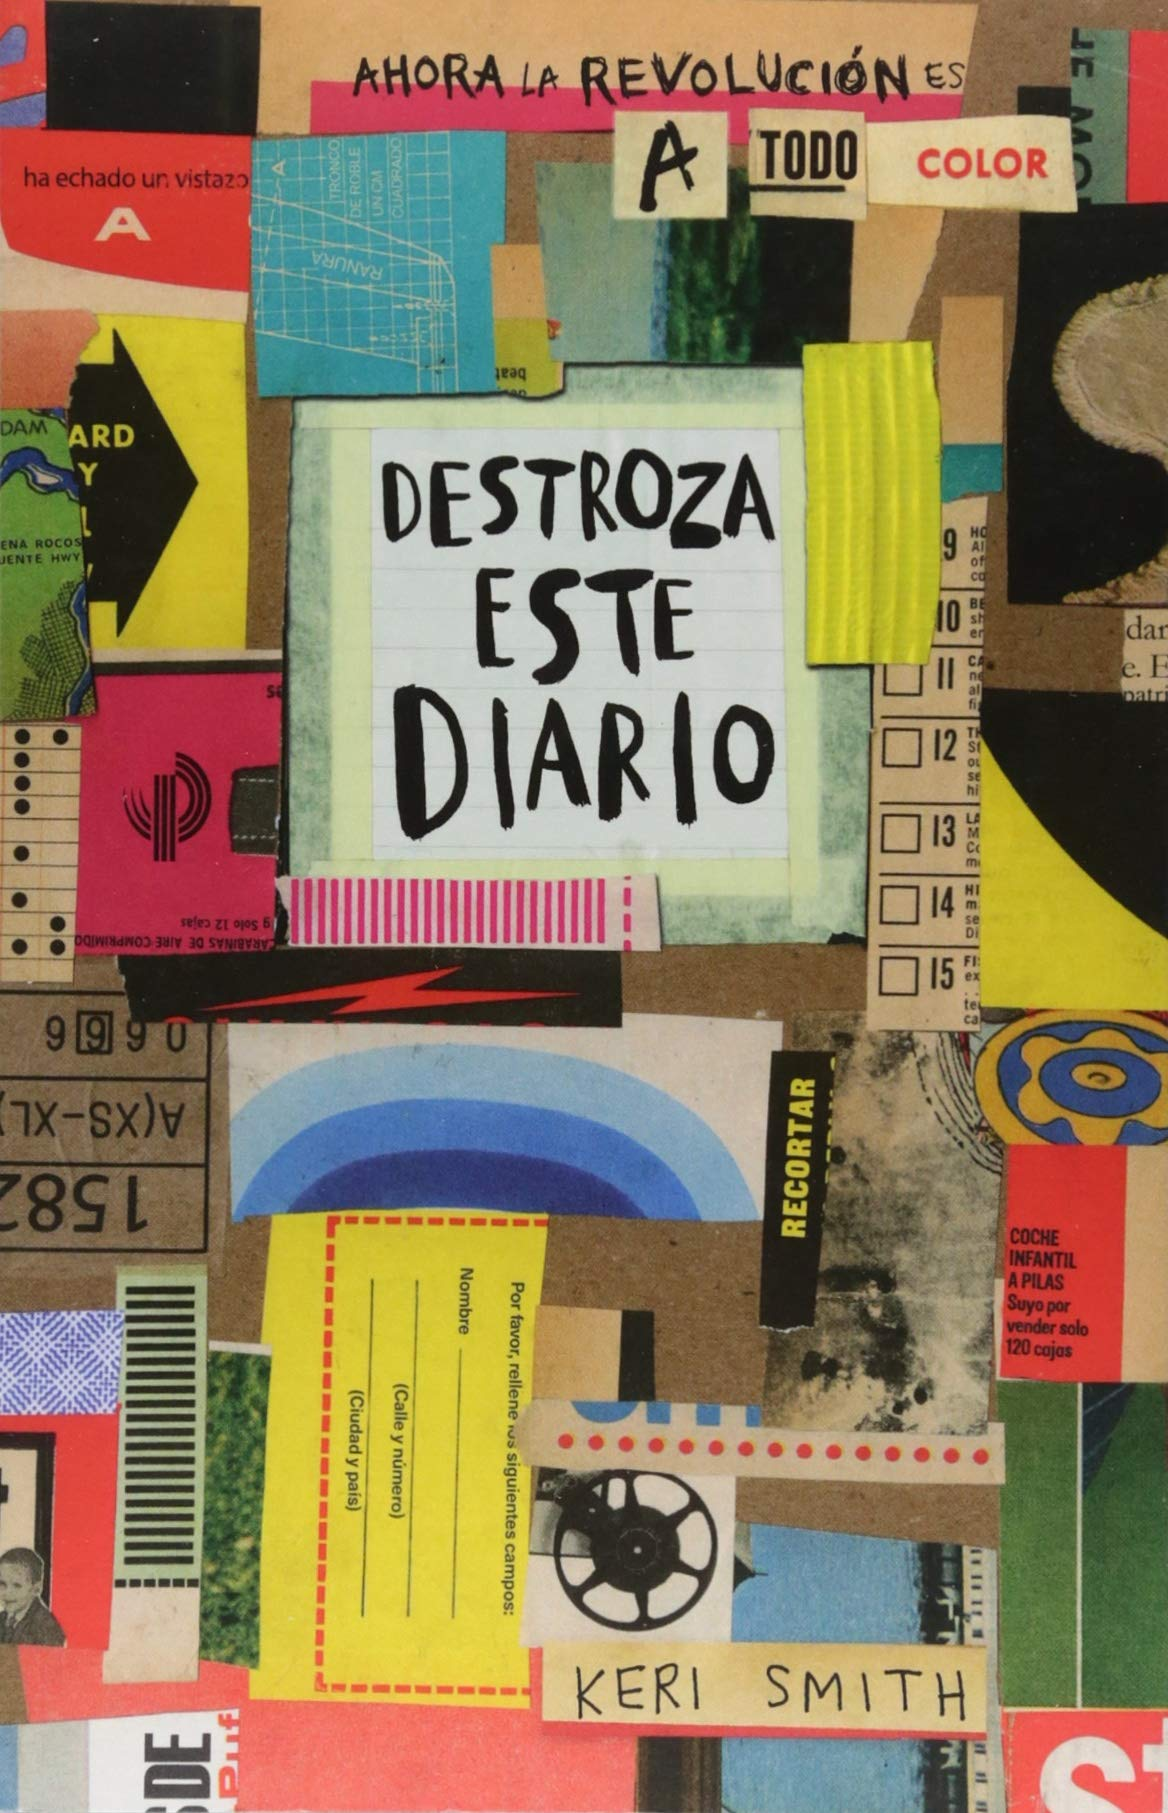 Destroza este diario. Ahora a todo color (Spanish Edition): Keri Smith: 9786077475323: Amazon.com: Books